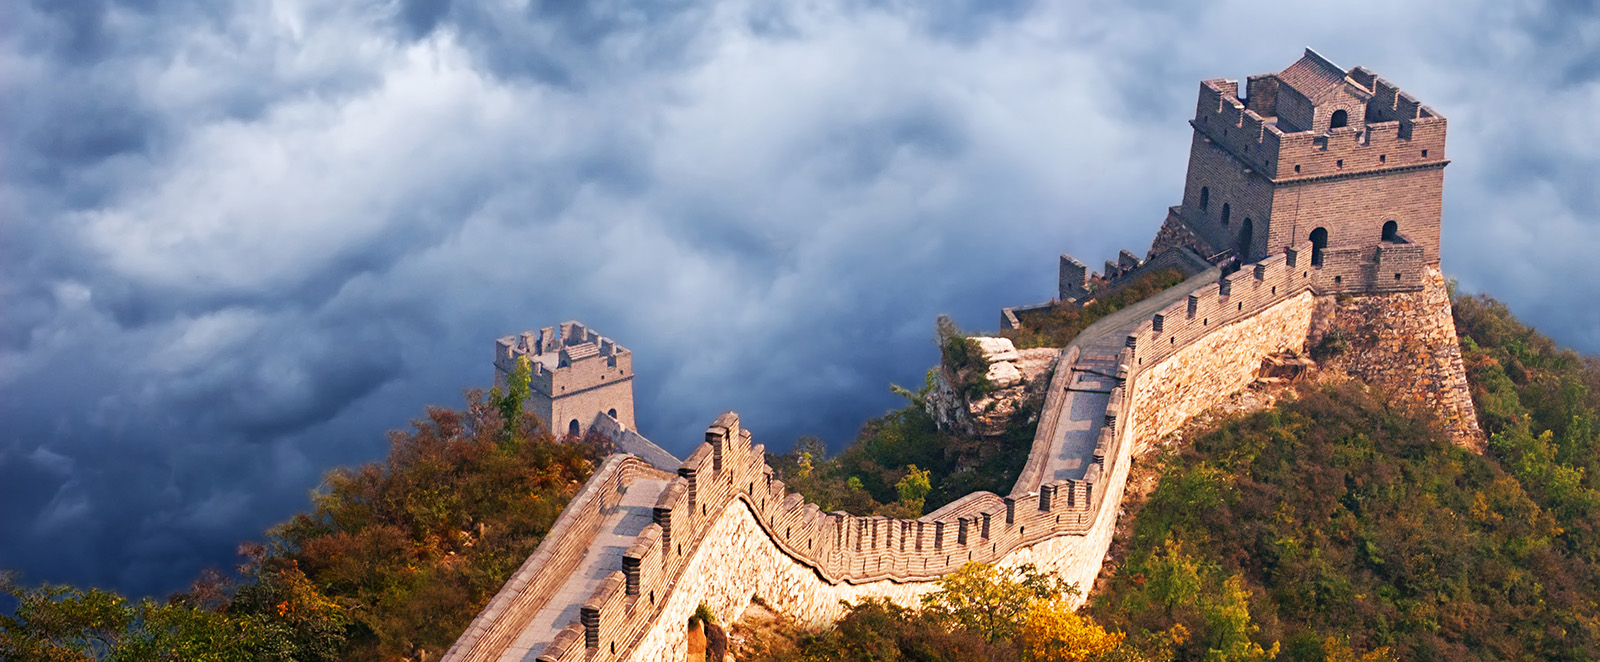 tour-china-great-wall.jpg